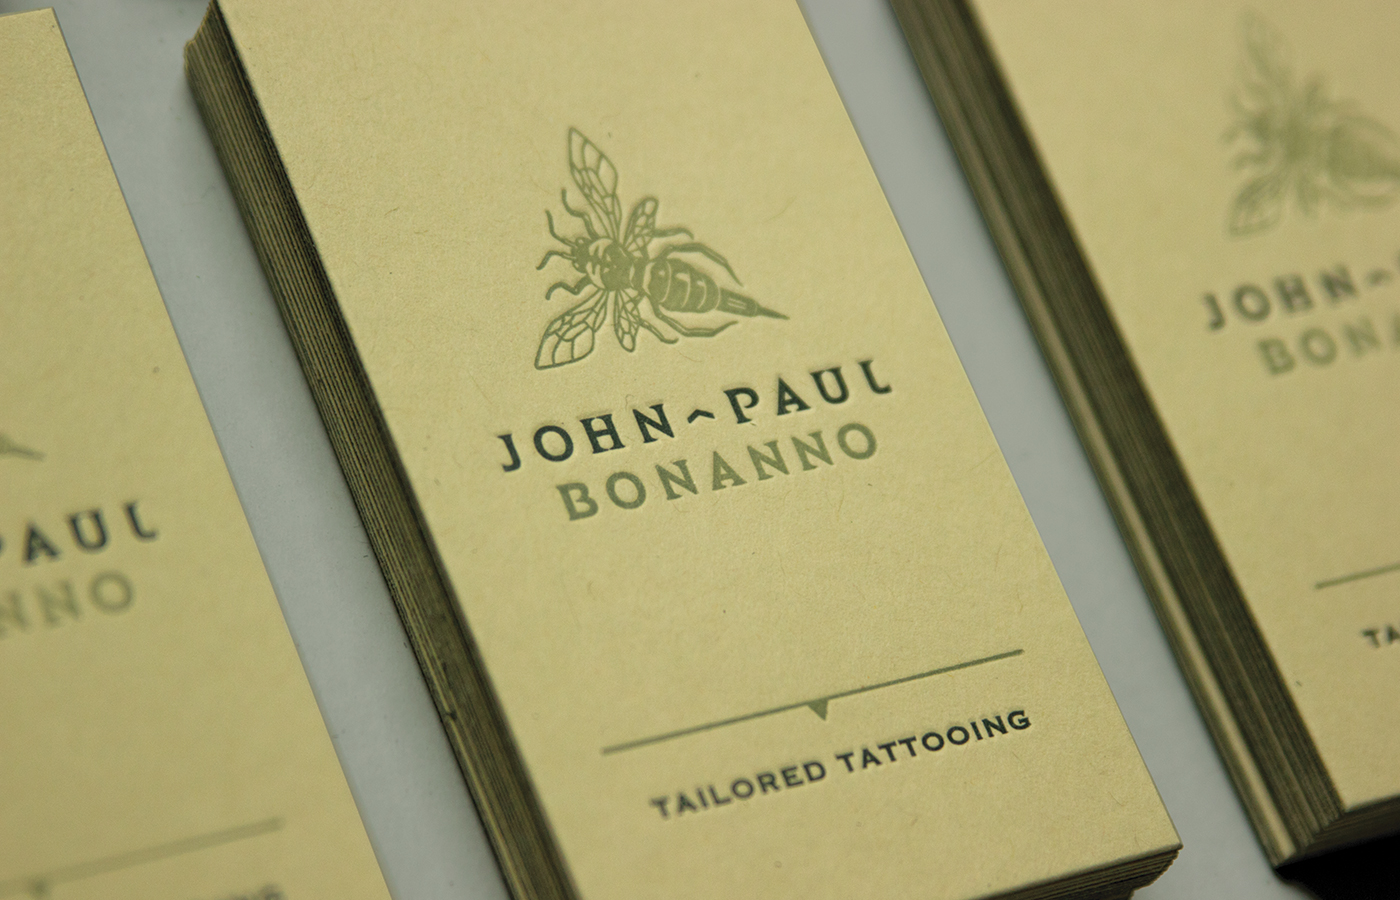 Branding for John-Paul Bonanno Tailored Tattooing by Madonna+Child